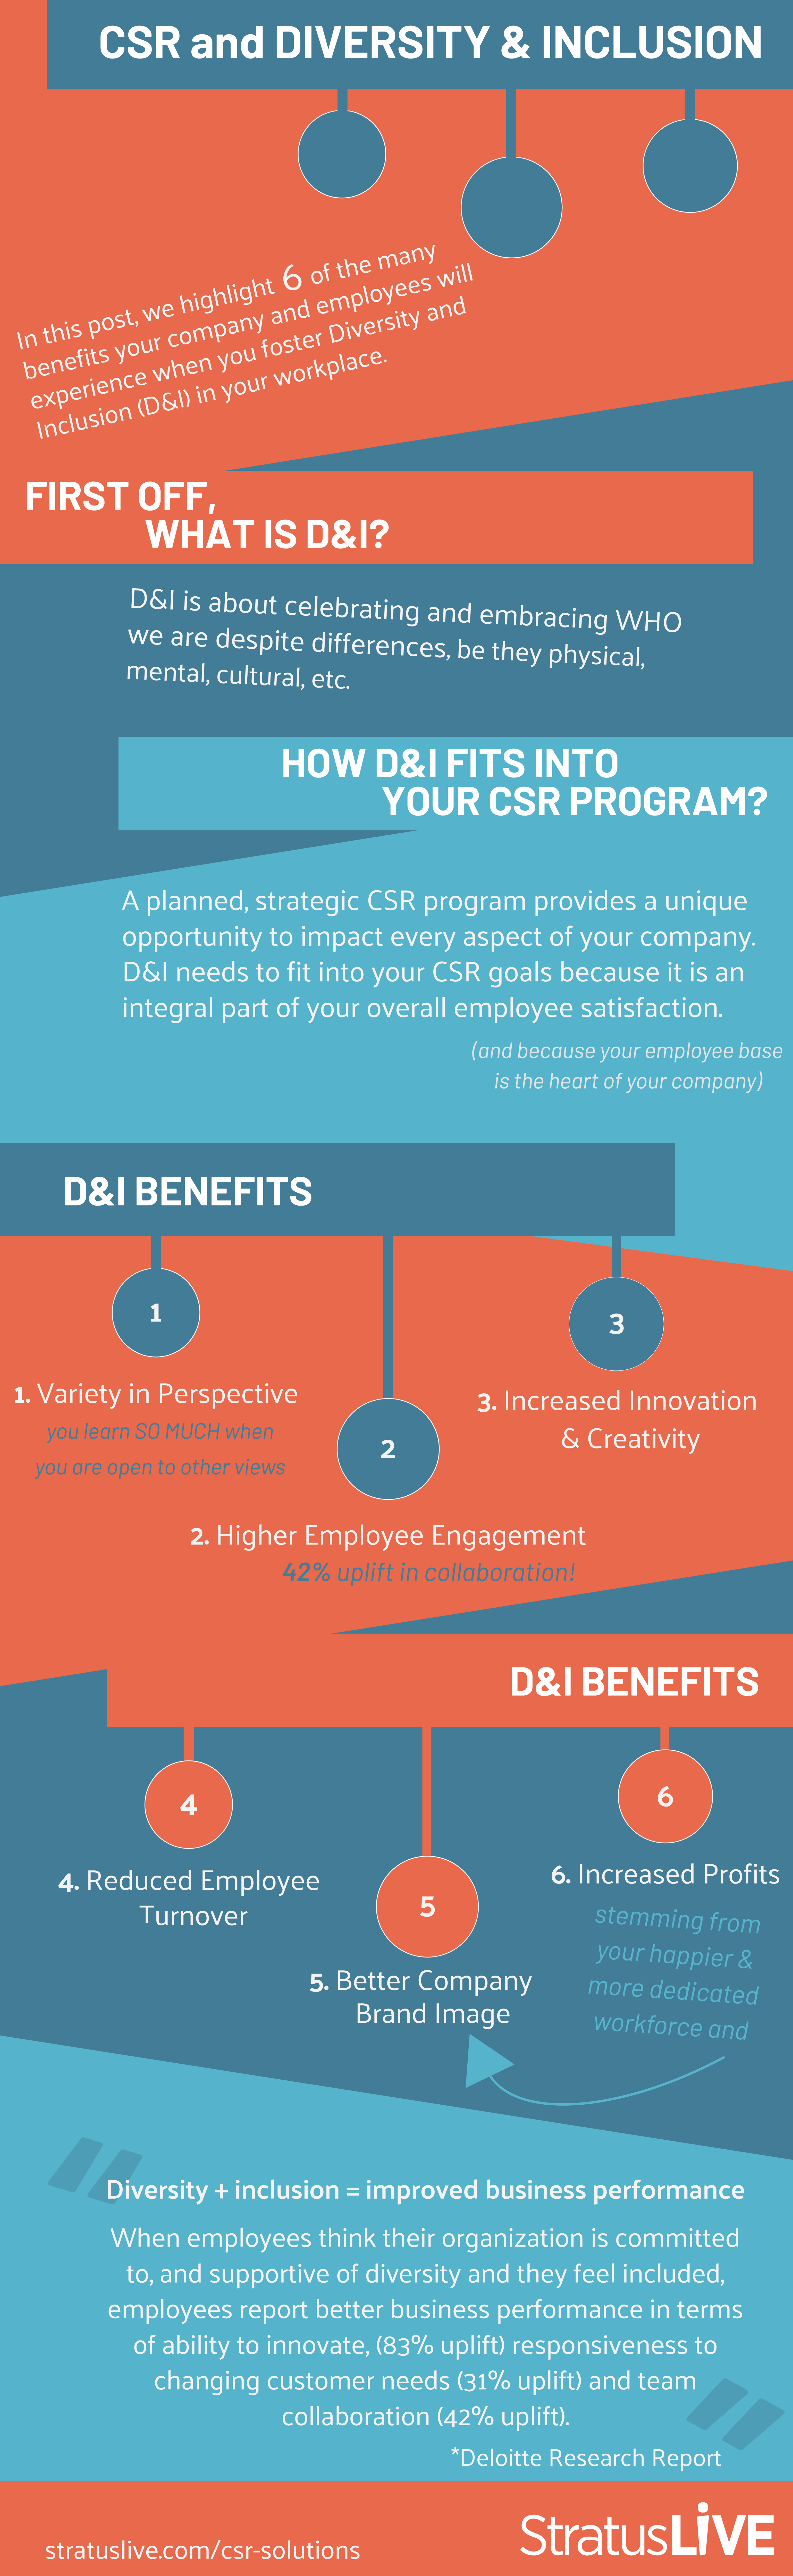 Diversity and Inclusion Infographic Blog